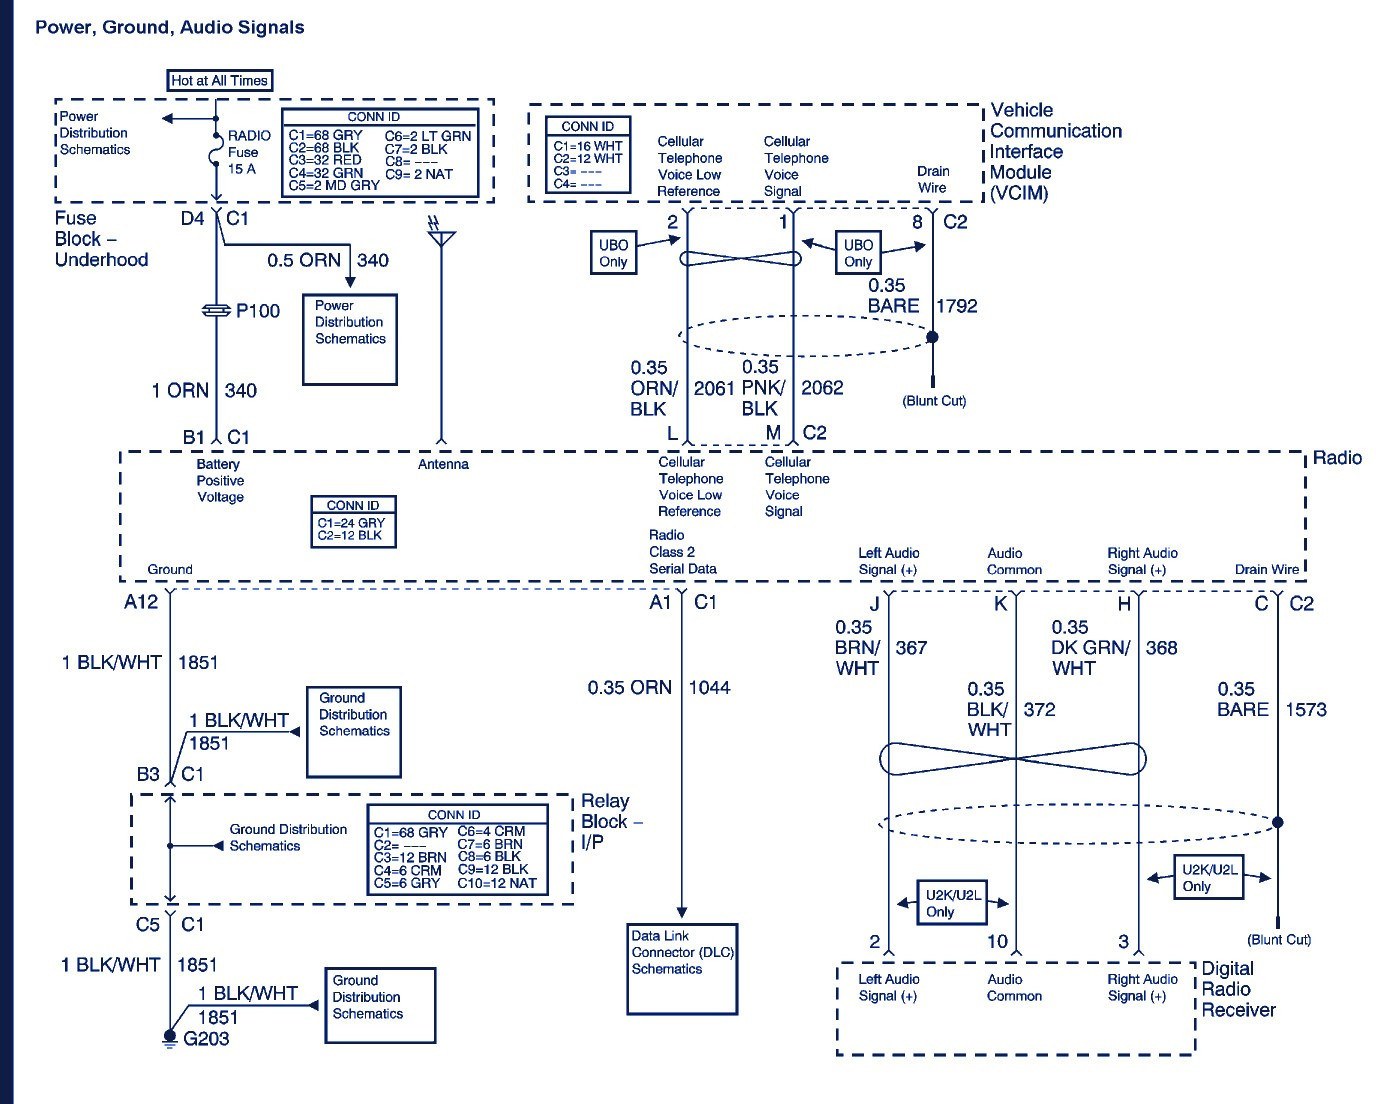 2007 Tahoe Radio Wiring Diagram Elegant Wiring Diagram Image Ford Focus  Radio Wiring Diagram 95 Tahoe Radio Wiring Diagram